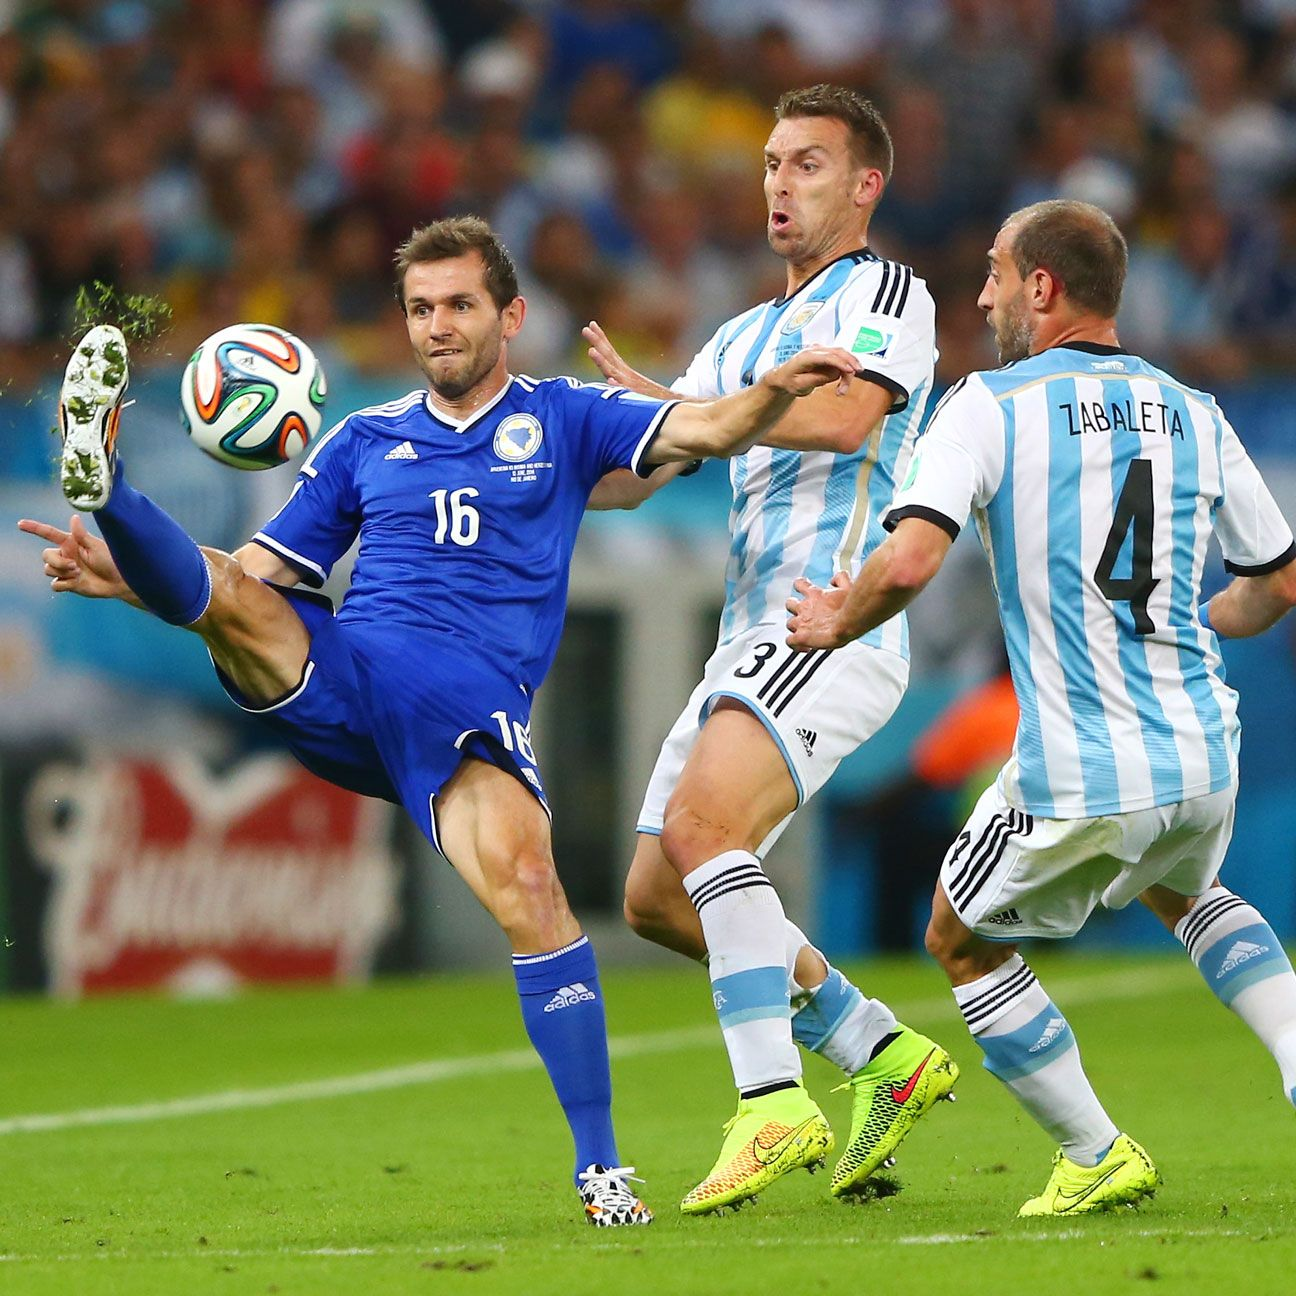 Senad Lulic largely shut down the attacking threats of Argentina in the first half.